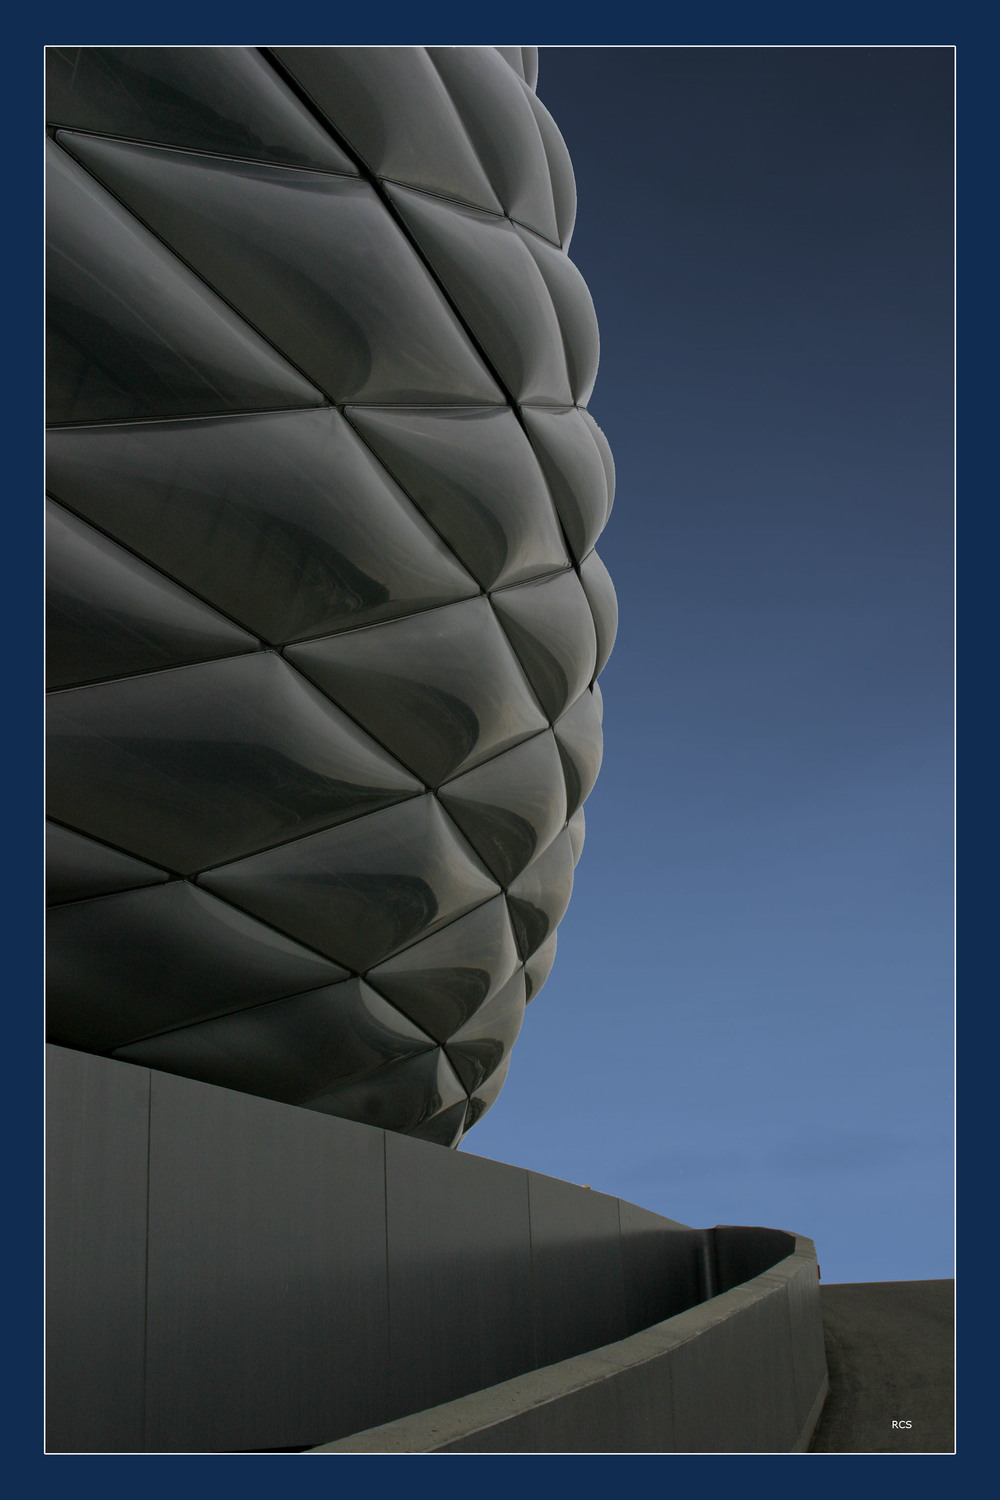 Allianz soccer stadium in Munich, Germany.